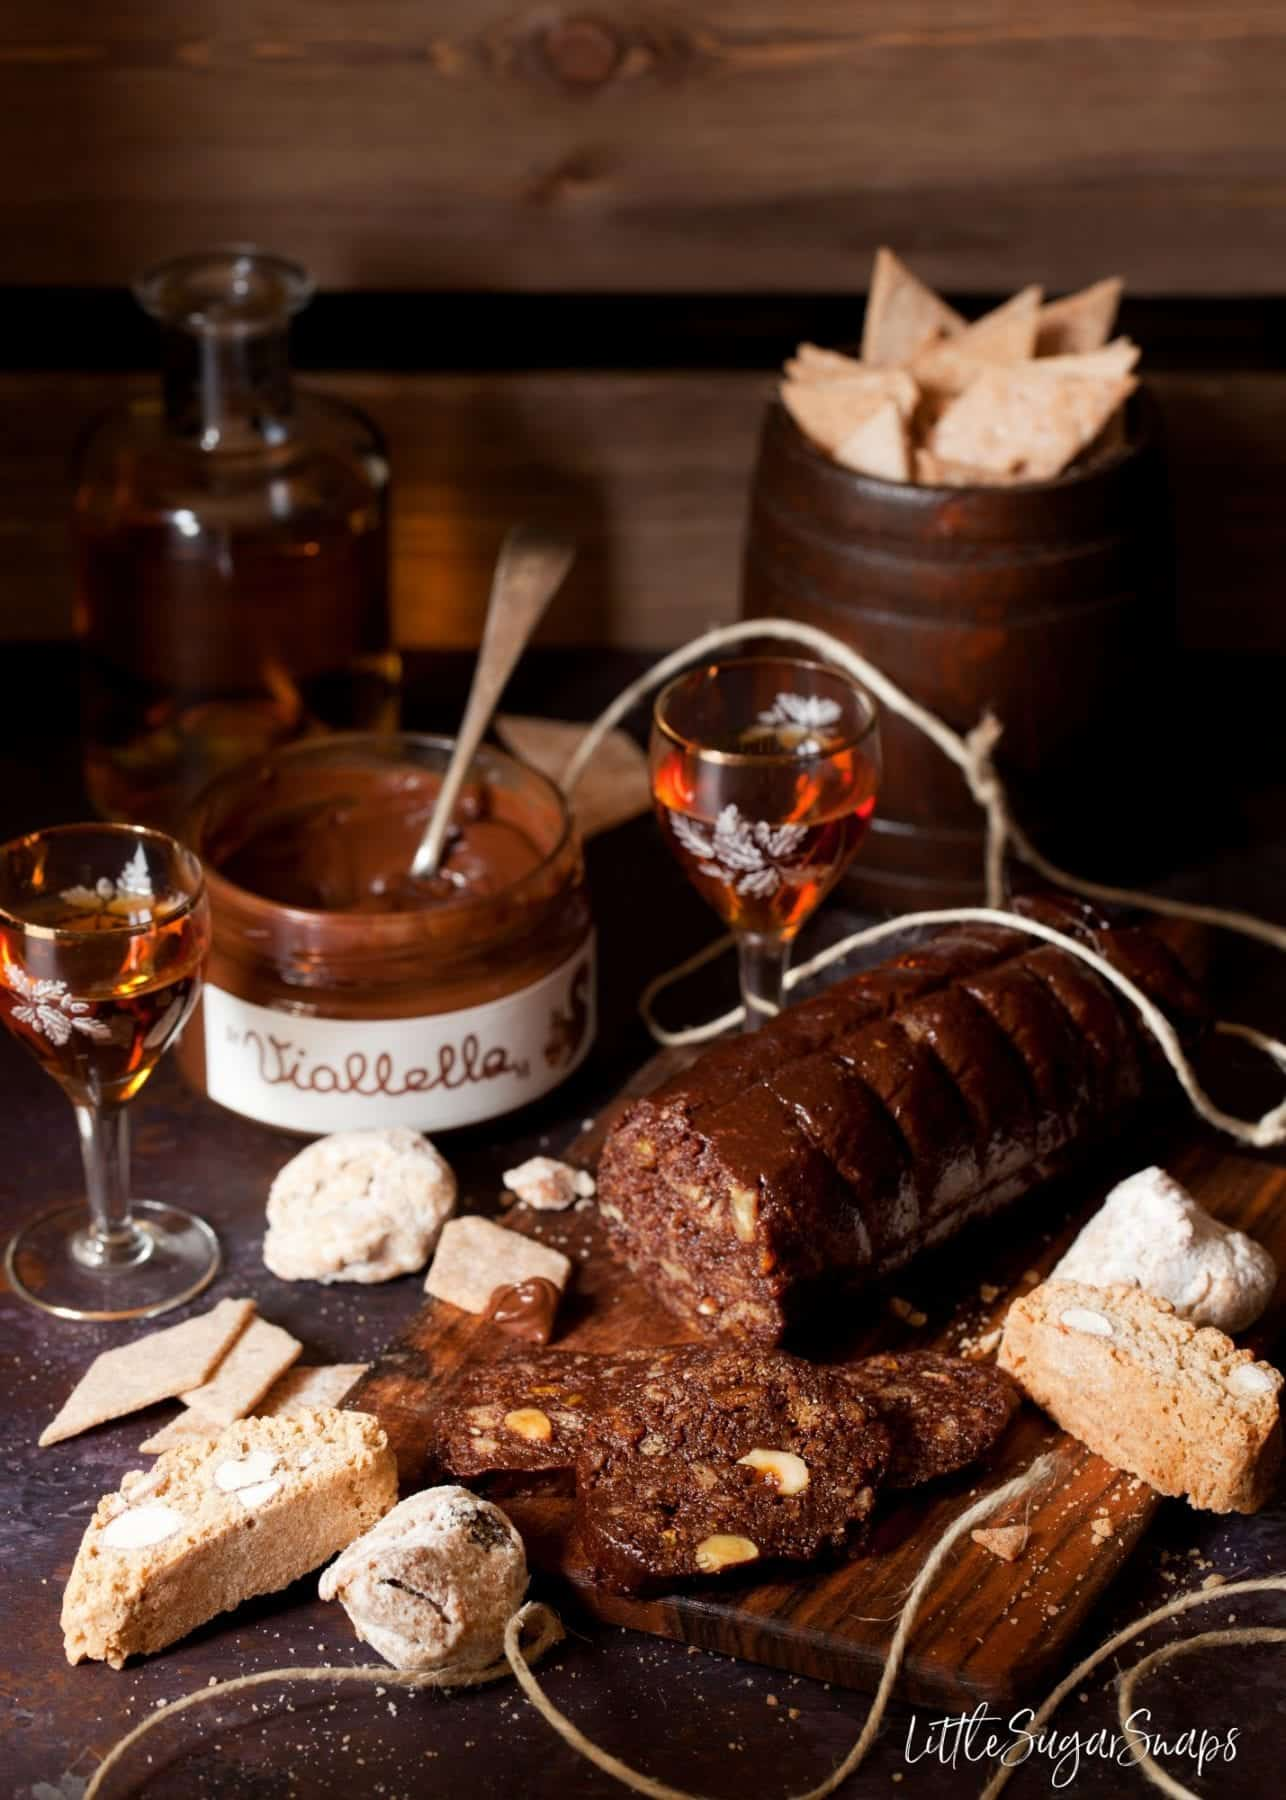 Fattoria La Vialla Products including chocolate salami, chocolate spread and biscuits on a serving board with a glass of vin santo